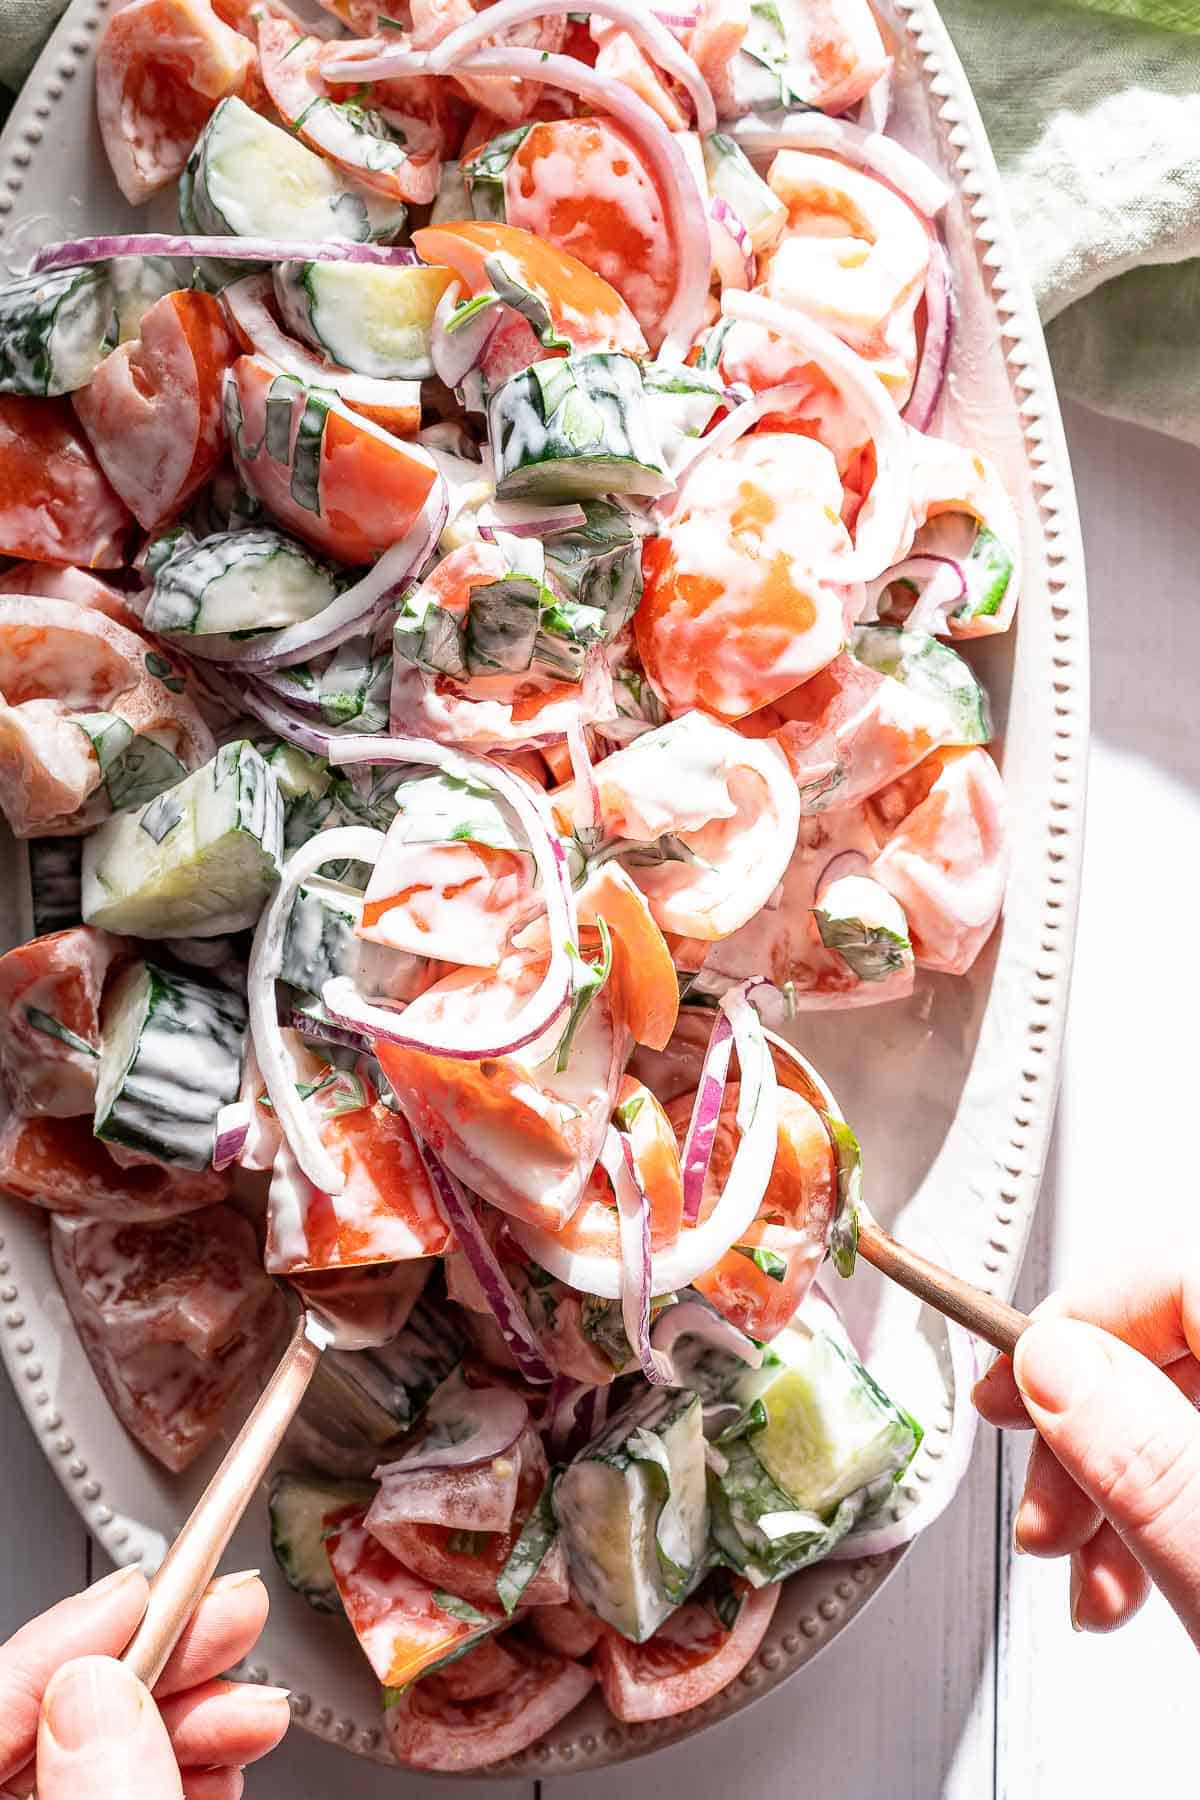 serving tomato salad from platter